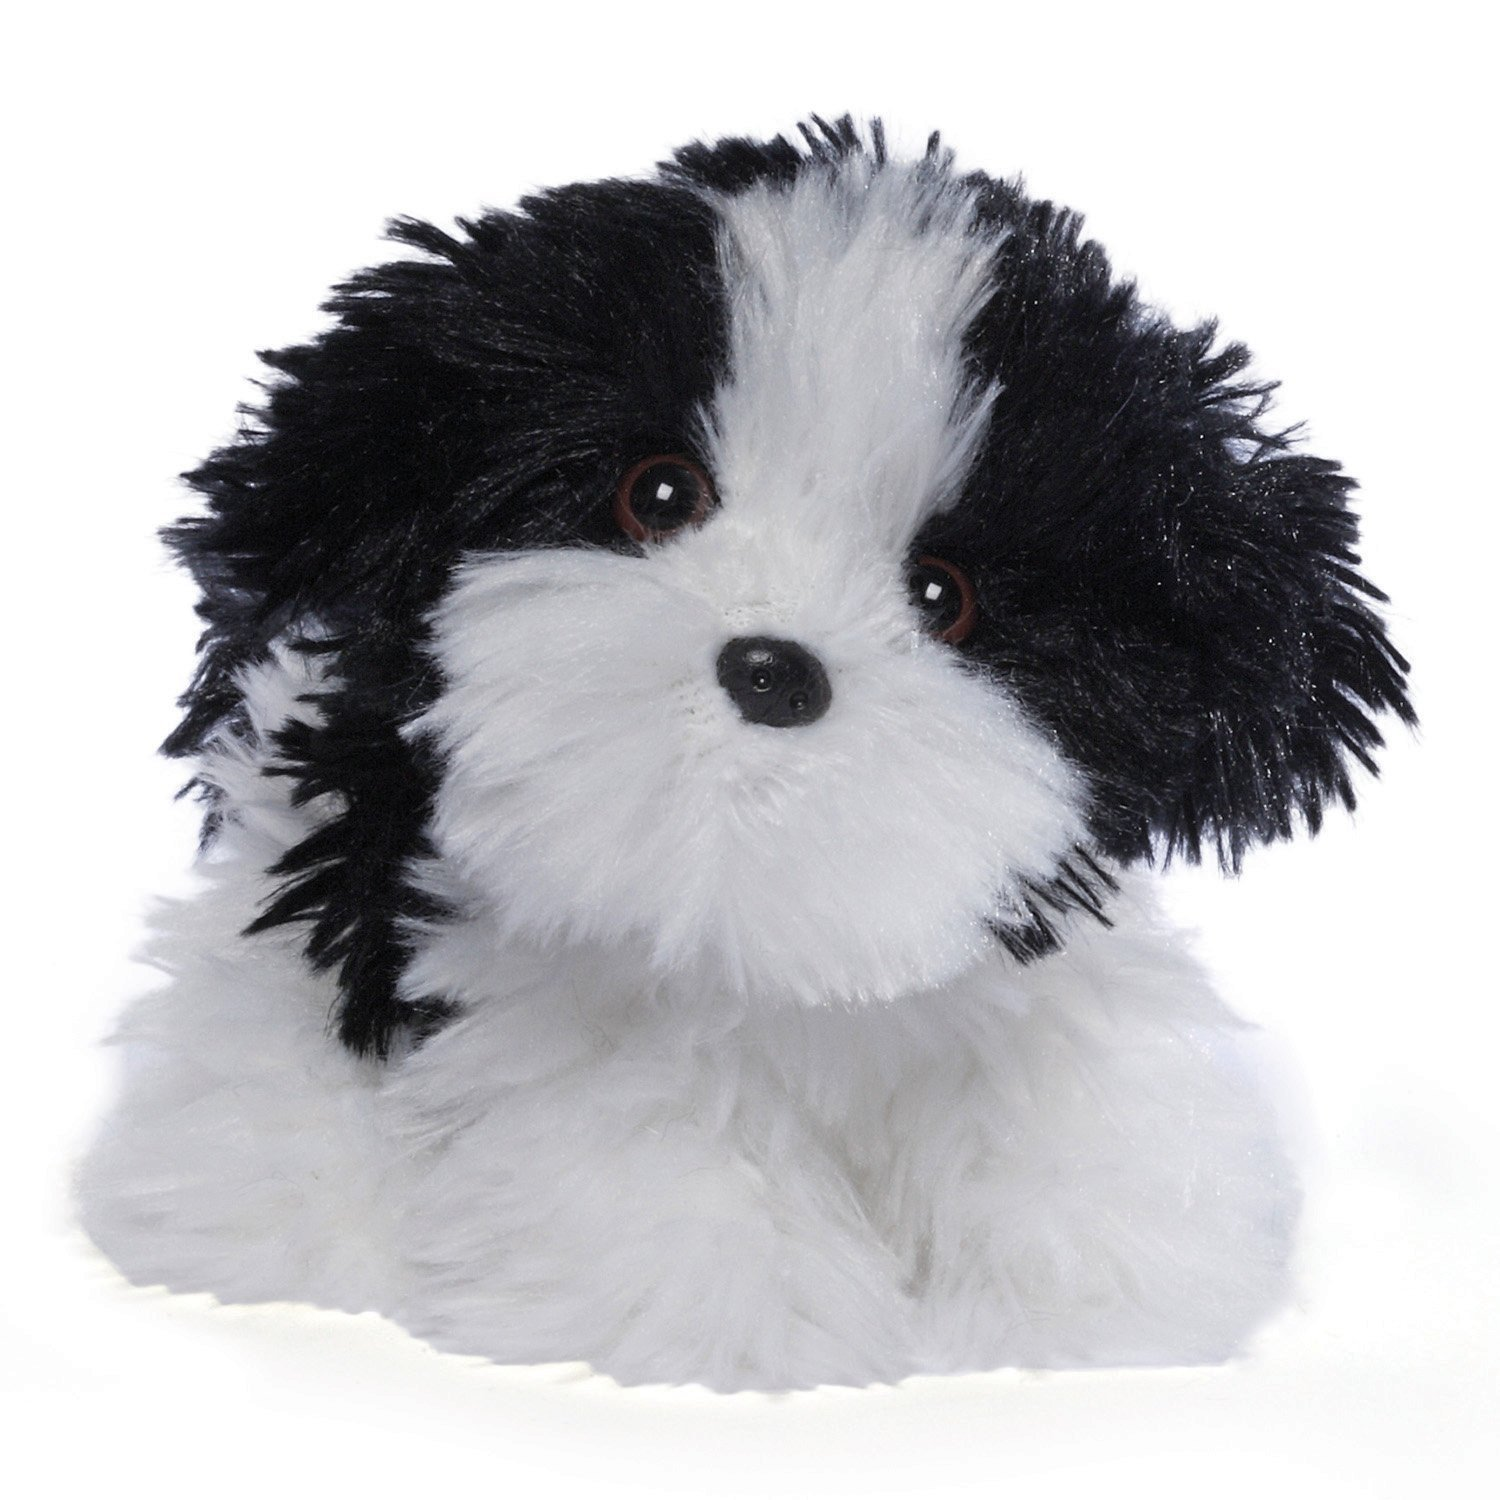 Cuddly Shih Tzu - Fully Customisable Plush